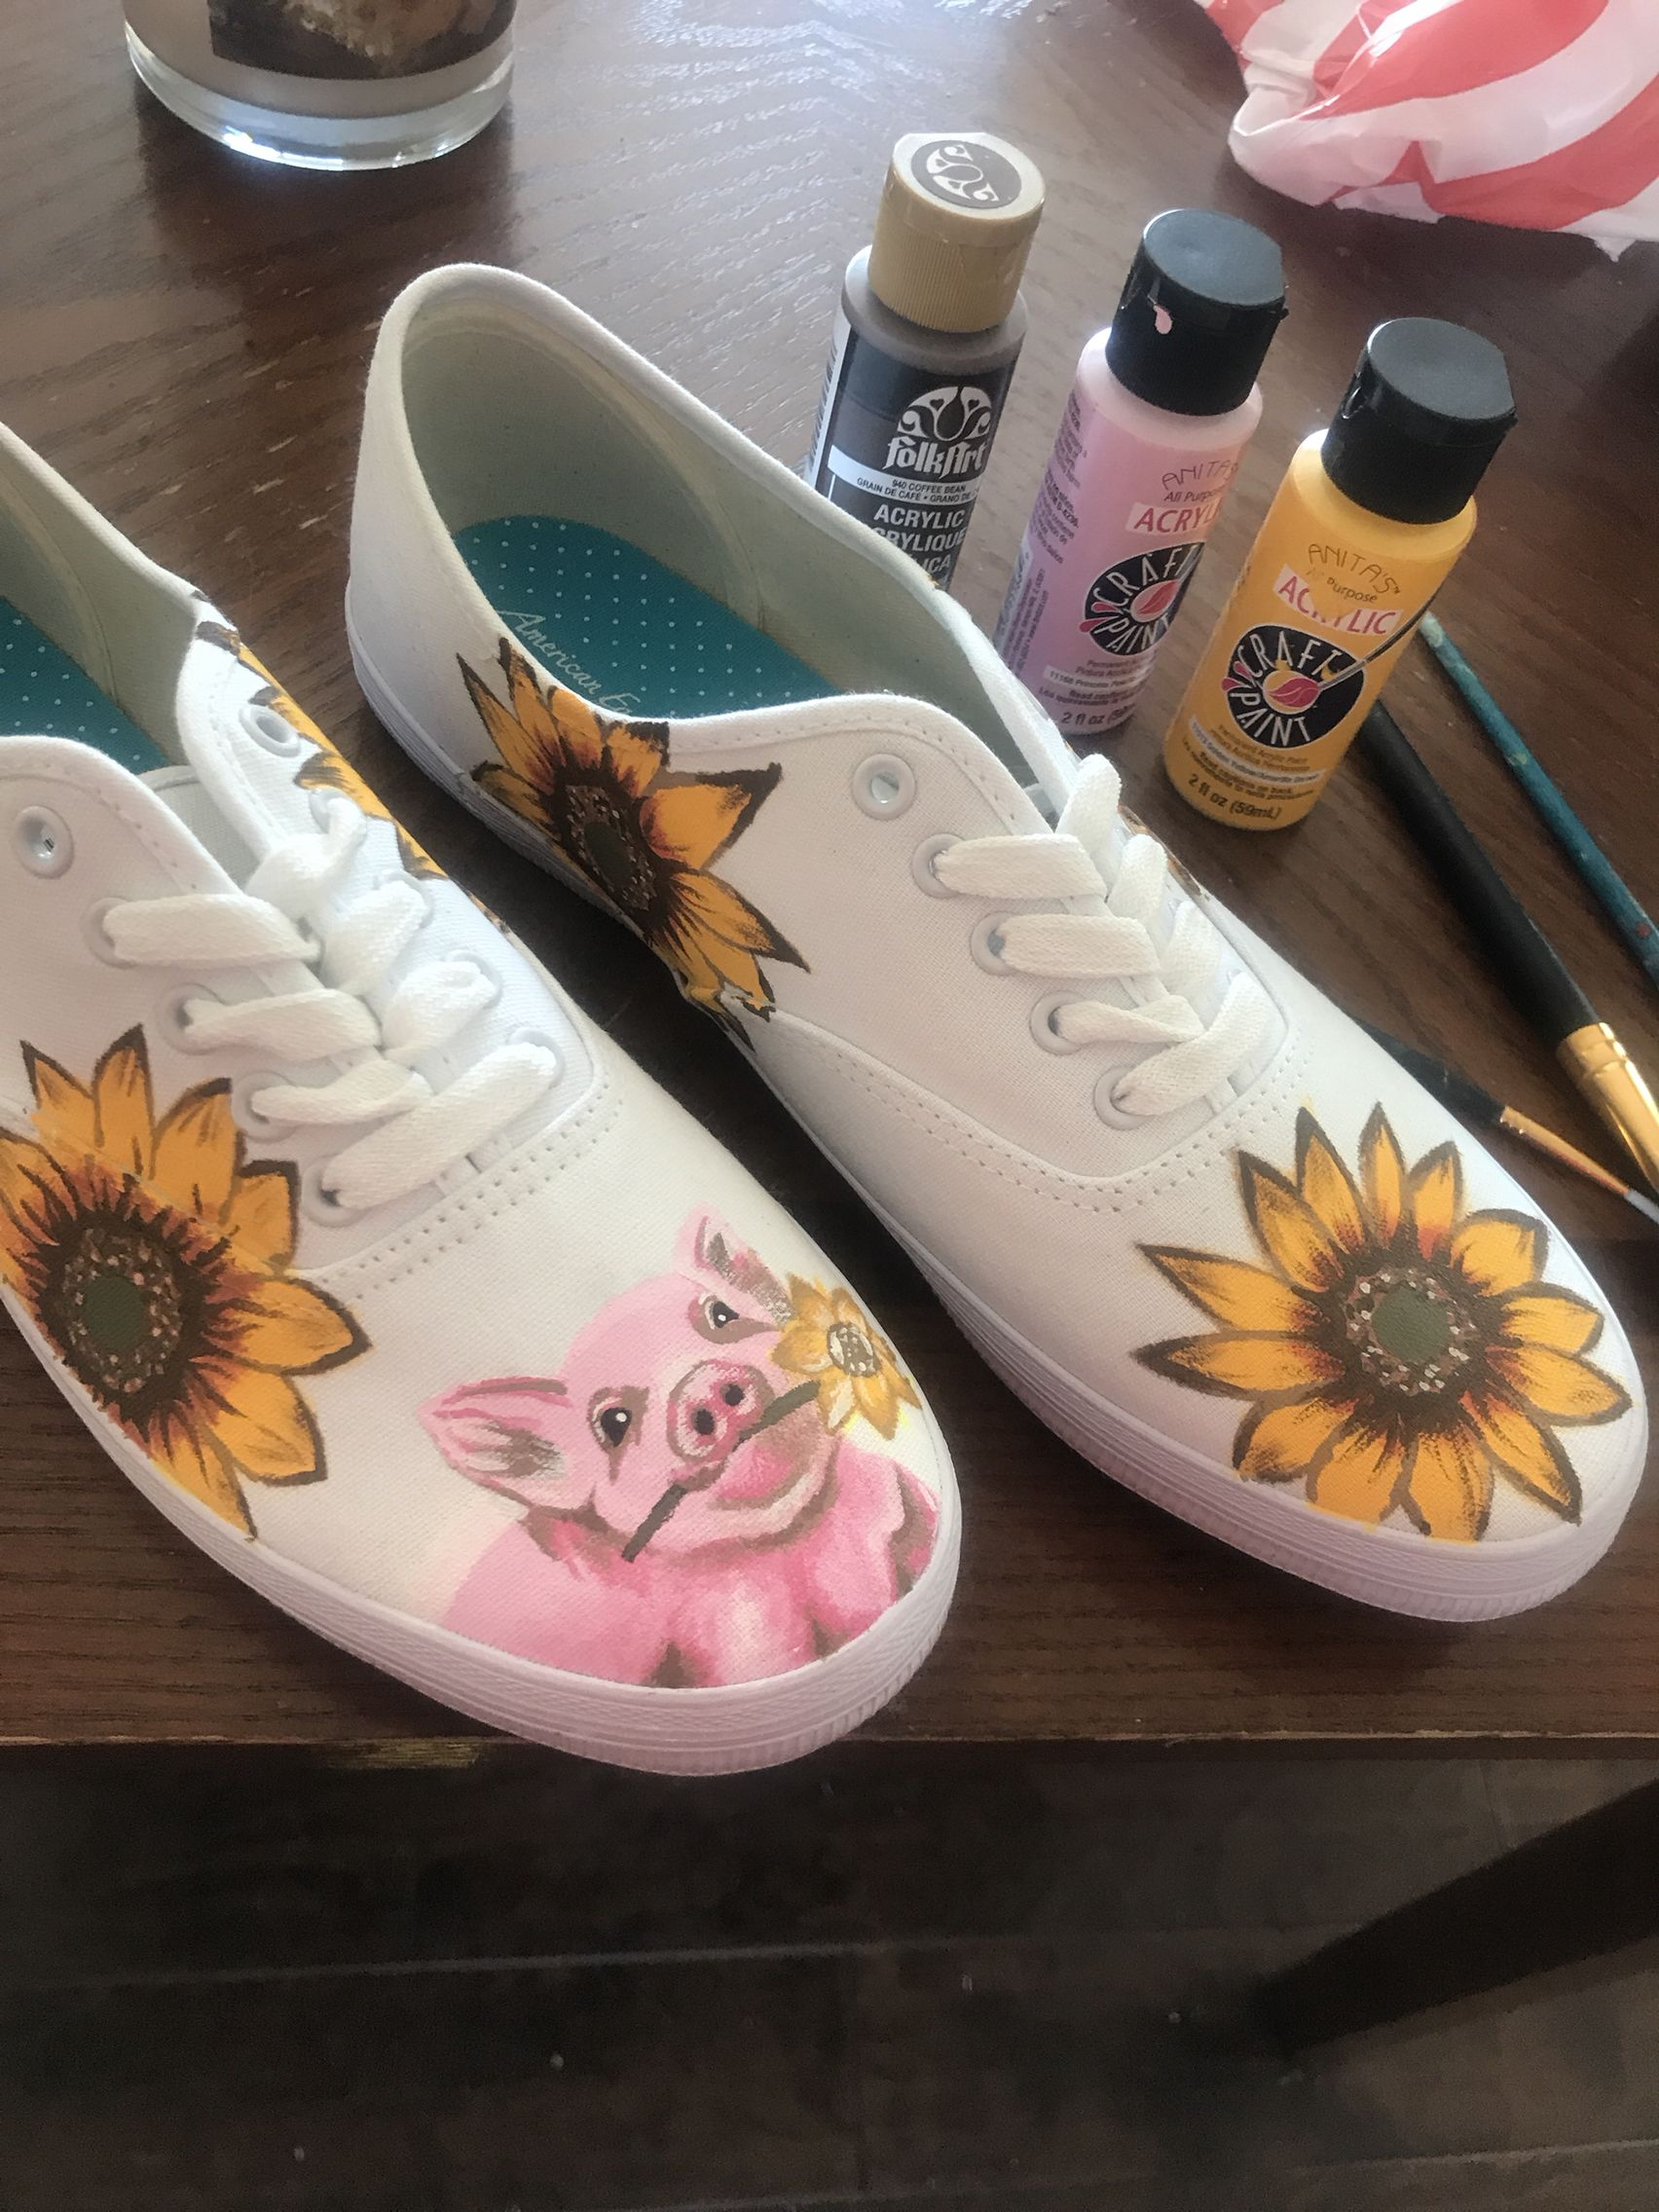 370942324731e1 Sassy sneakers by Julia